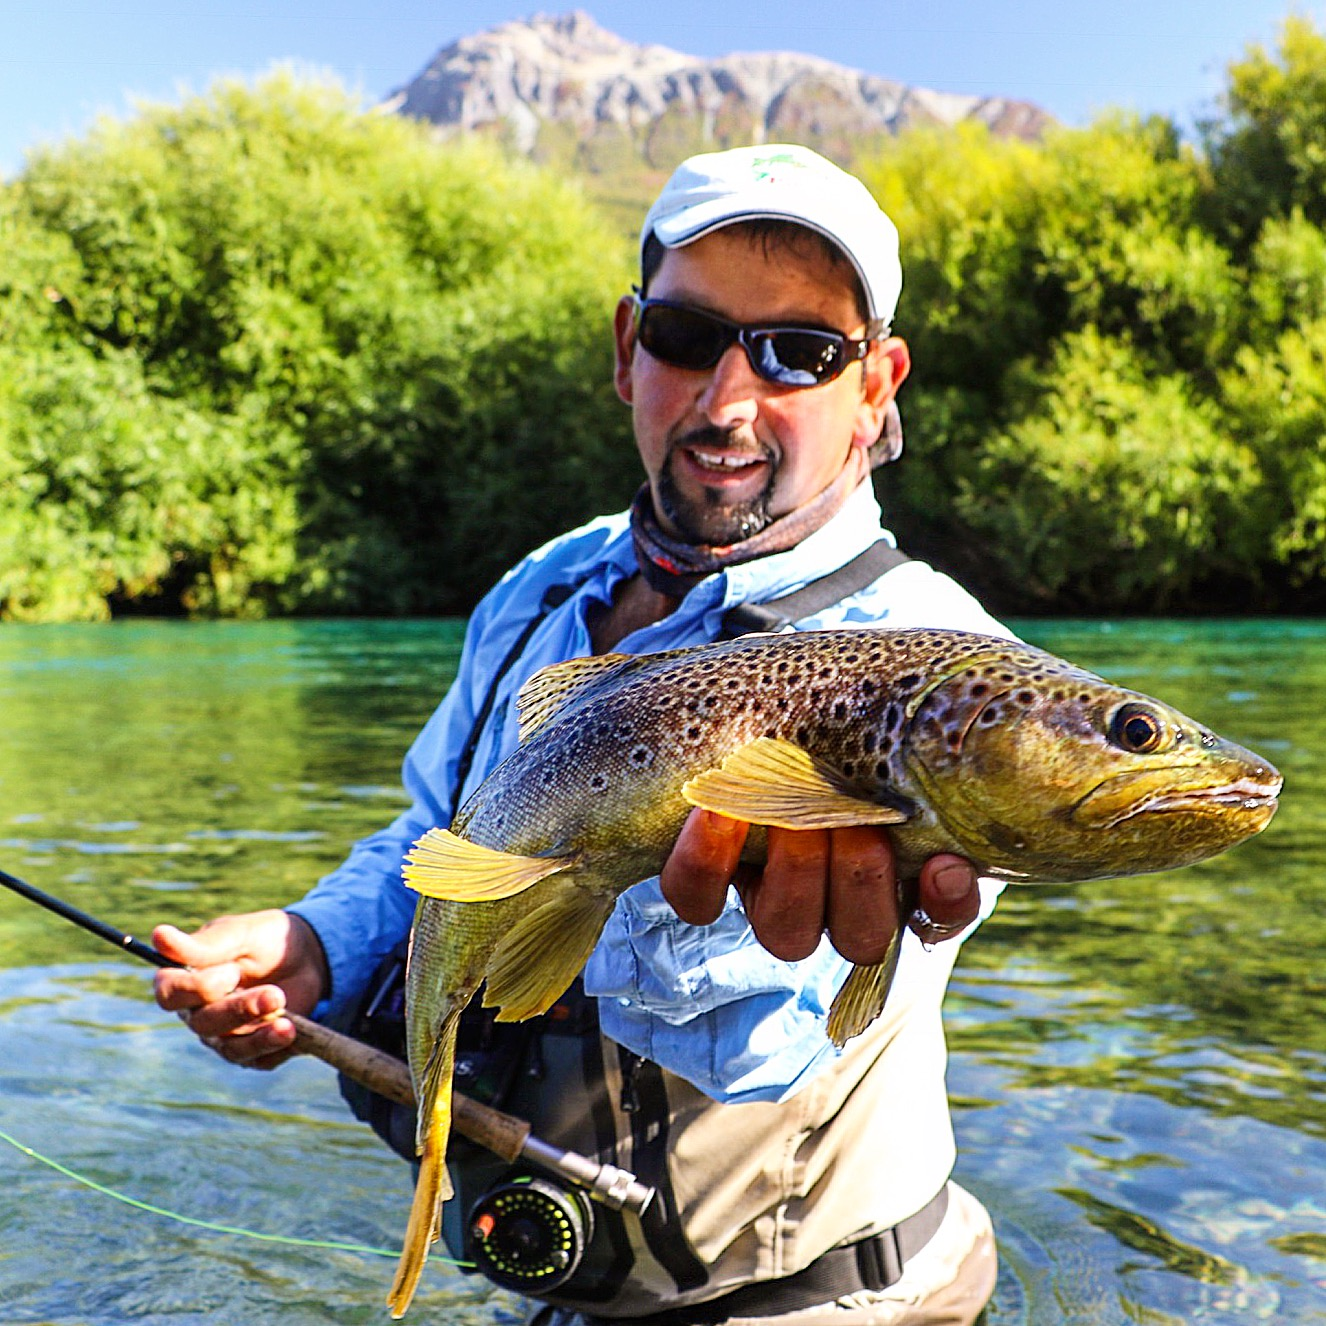 Streamers or dries it all fun on the Futa, this classic big spotted brown came up to the surface and attached a large dry fly being stripped and twitch through a run!